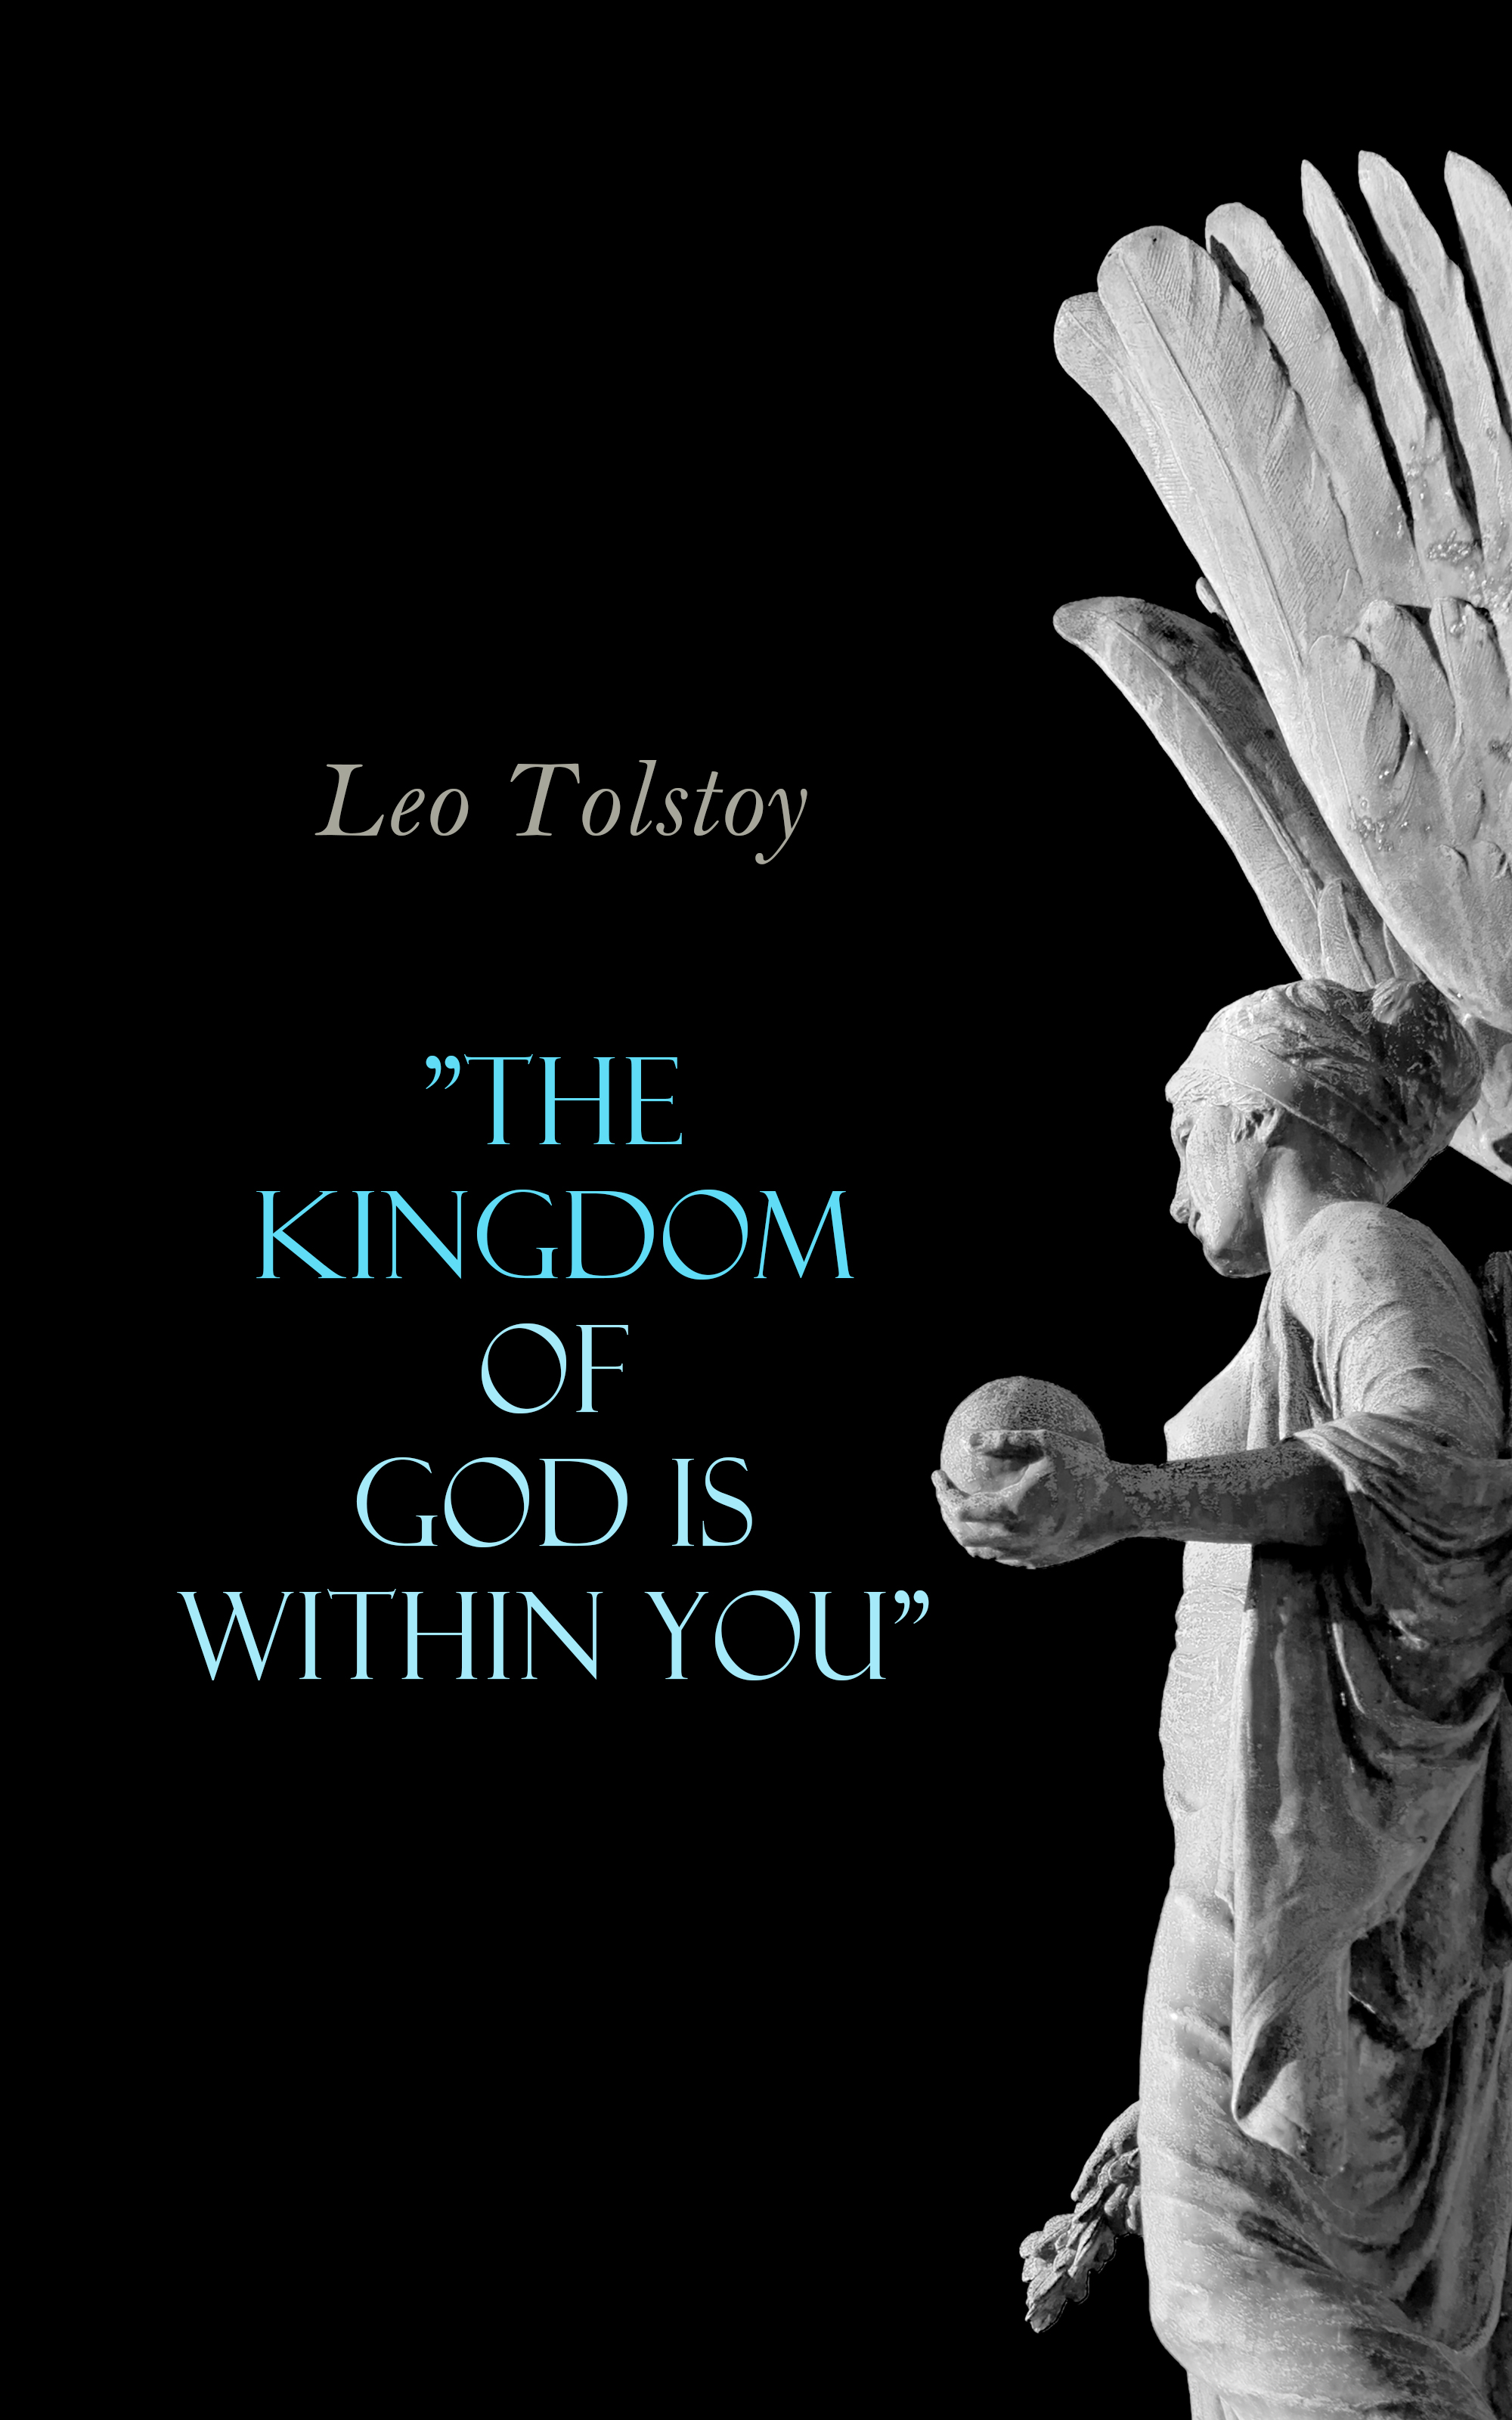 Leo Tolstoy The Kingdom of God Is Within You johnson olatunde breaking the cycle of generational curses god s remedy from the yoke of curses